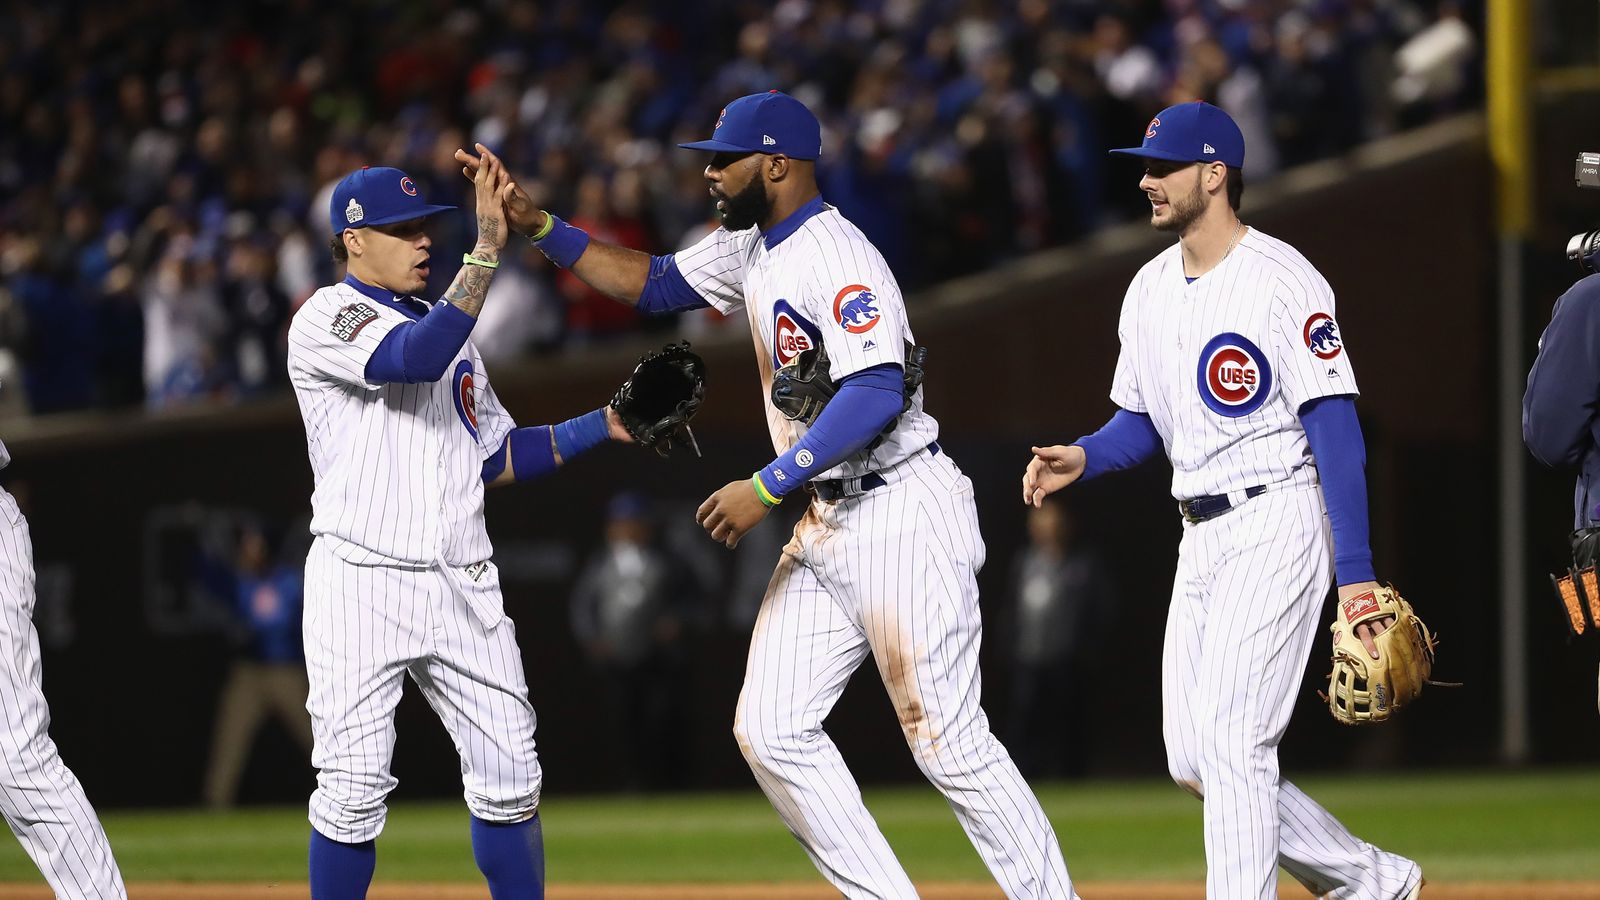 Chicago Cubs Keep World Series Dreams Alive With Narrow Win